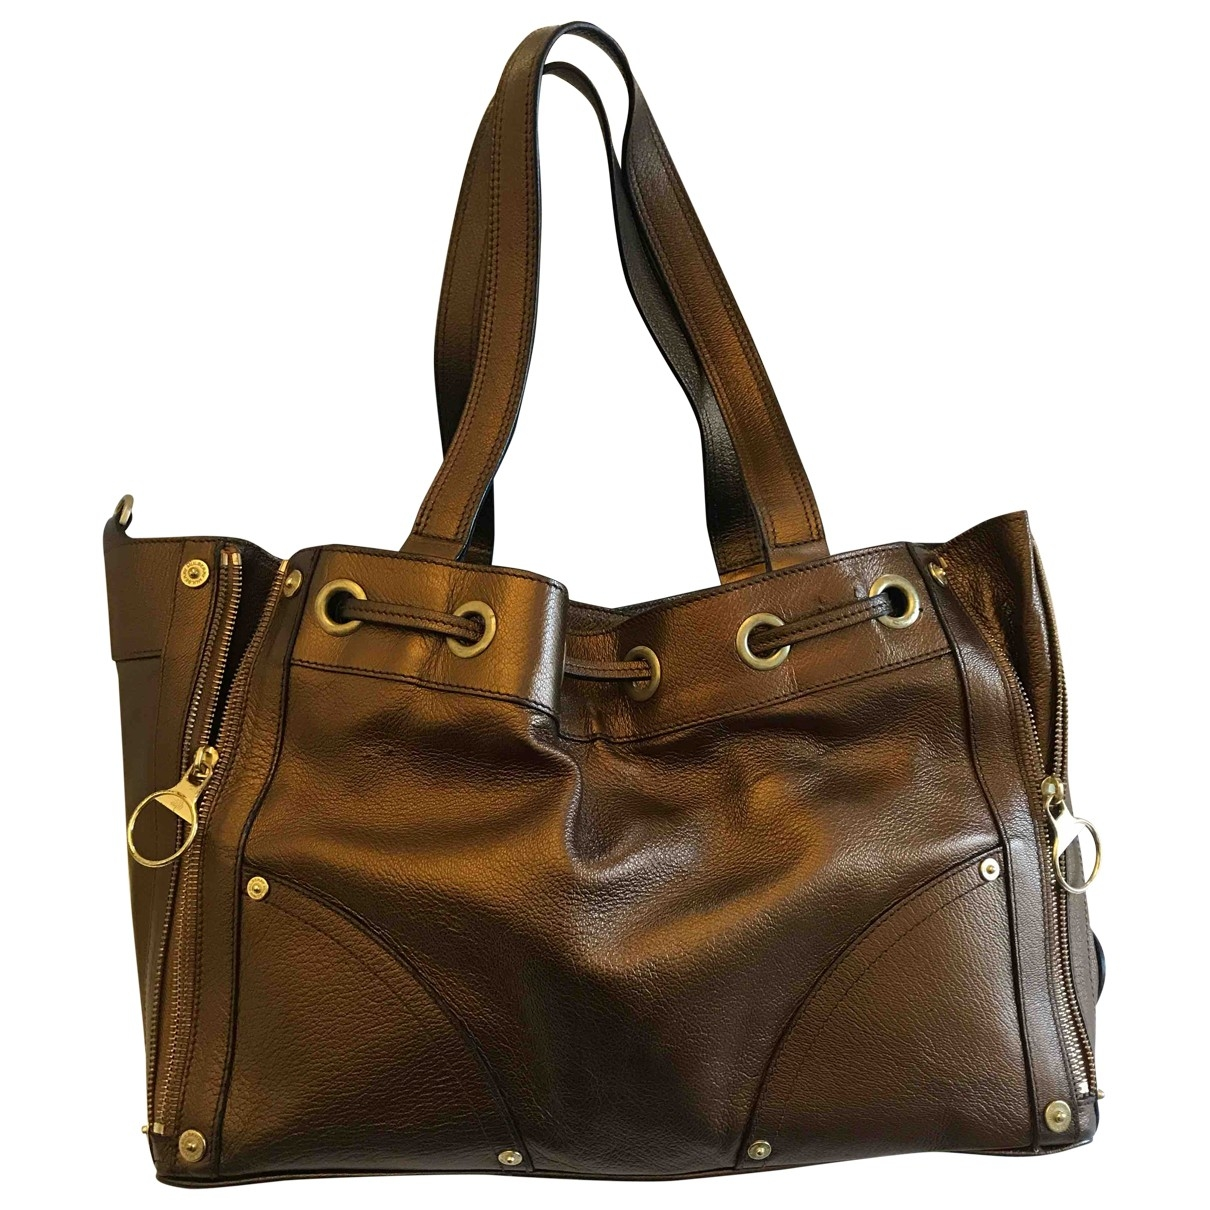 Mulberry \N Metallic Leather handbag for Women \N